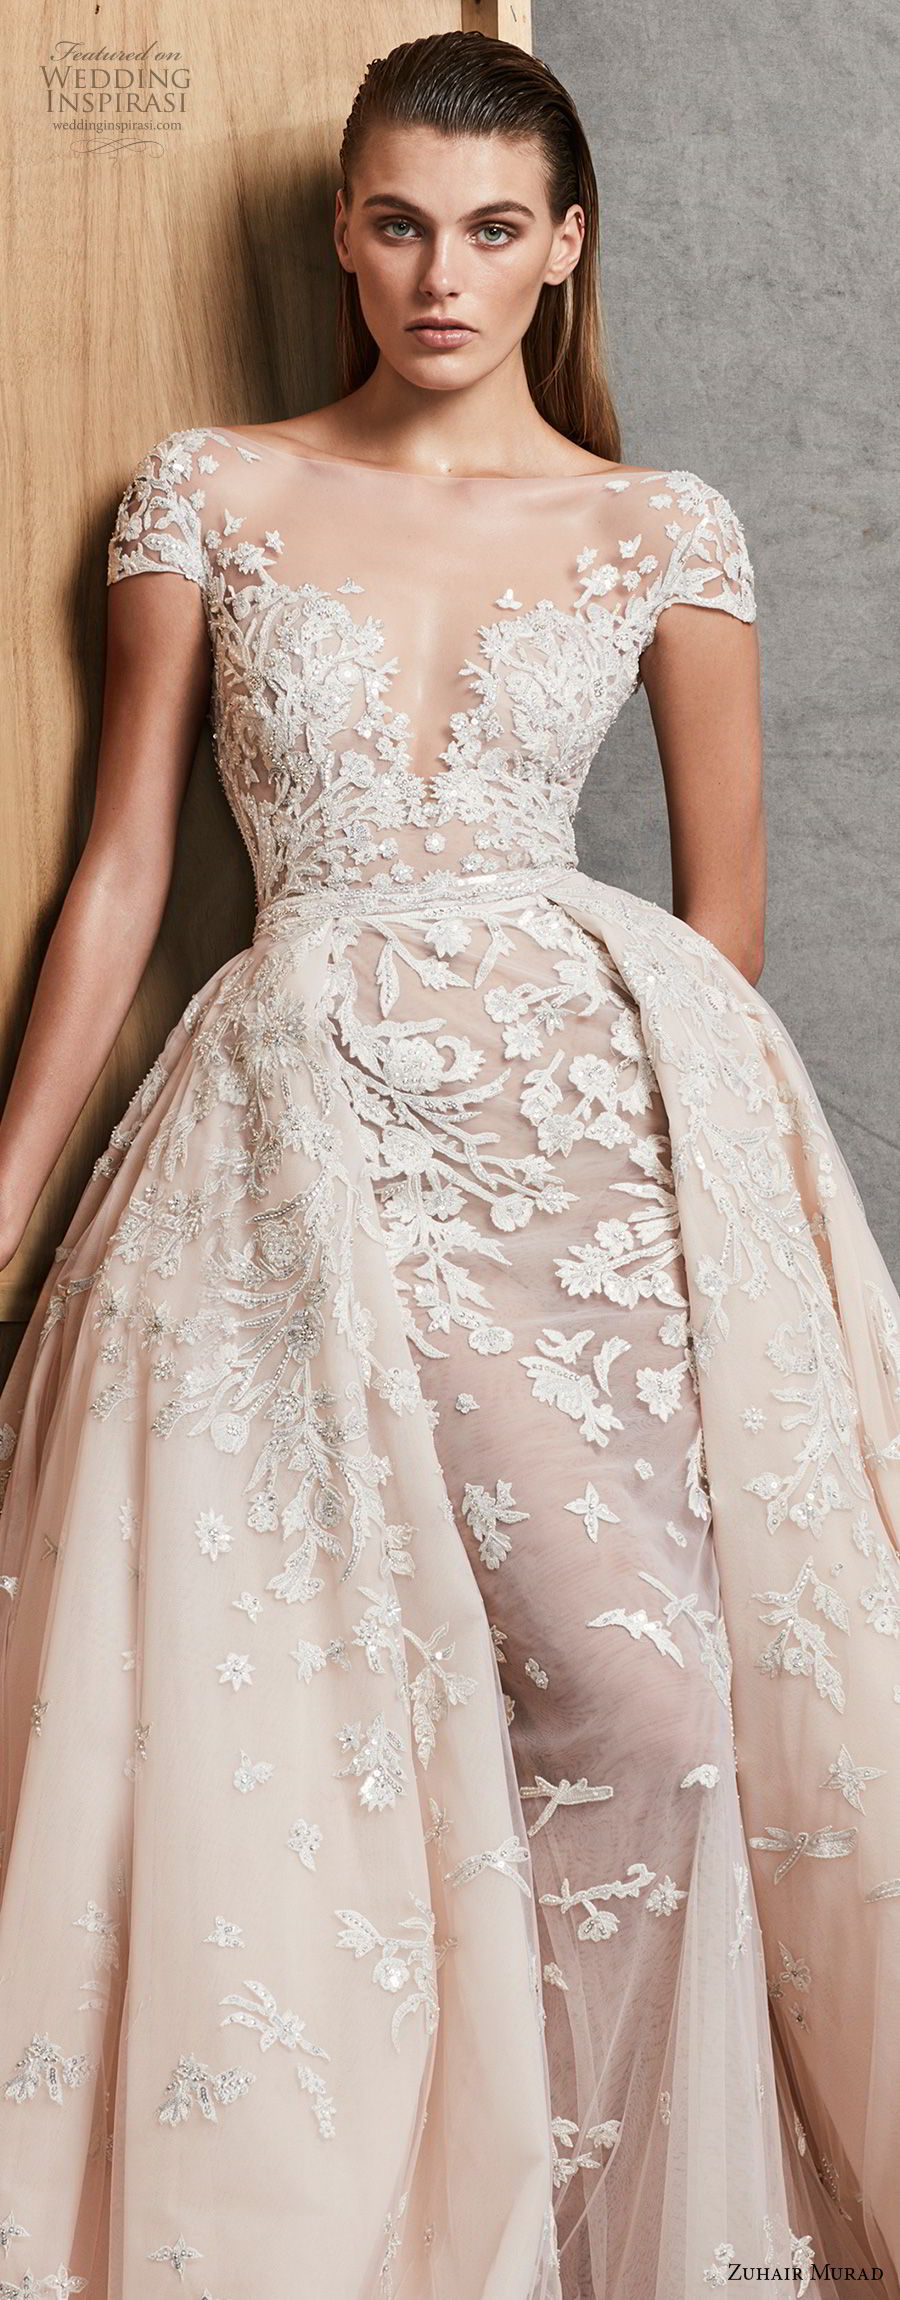 zuhair murad fall 2018 bridal cap sleeves illusion deep sweetheart neckline romantic princess blush fit and flare wedding dress a line overskirt chapel train (15) zv